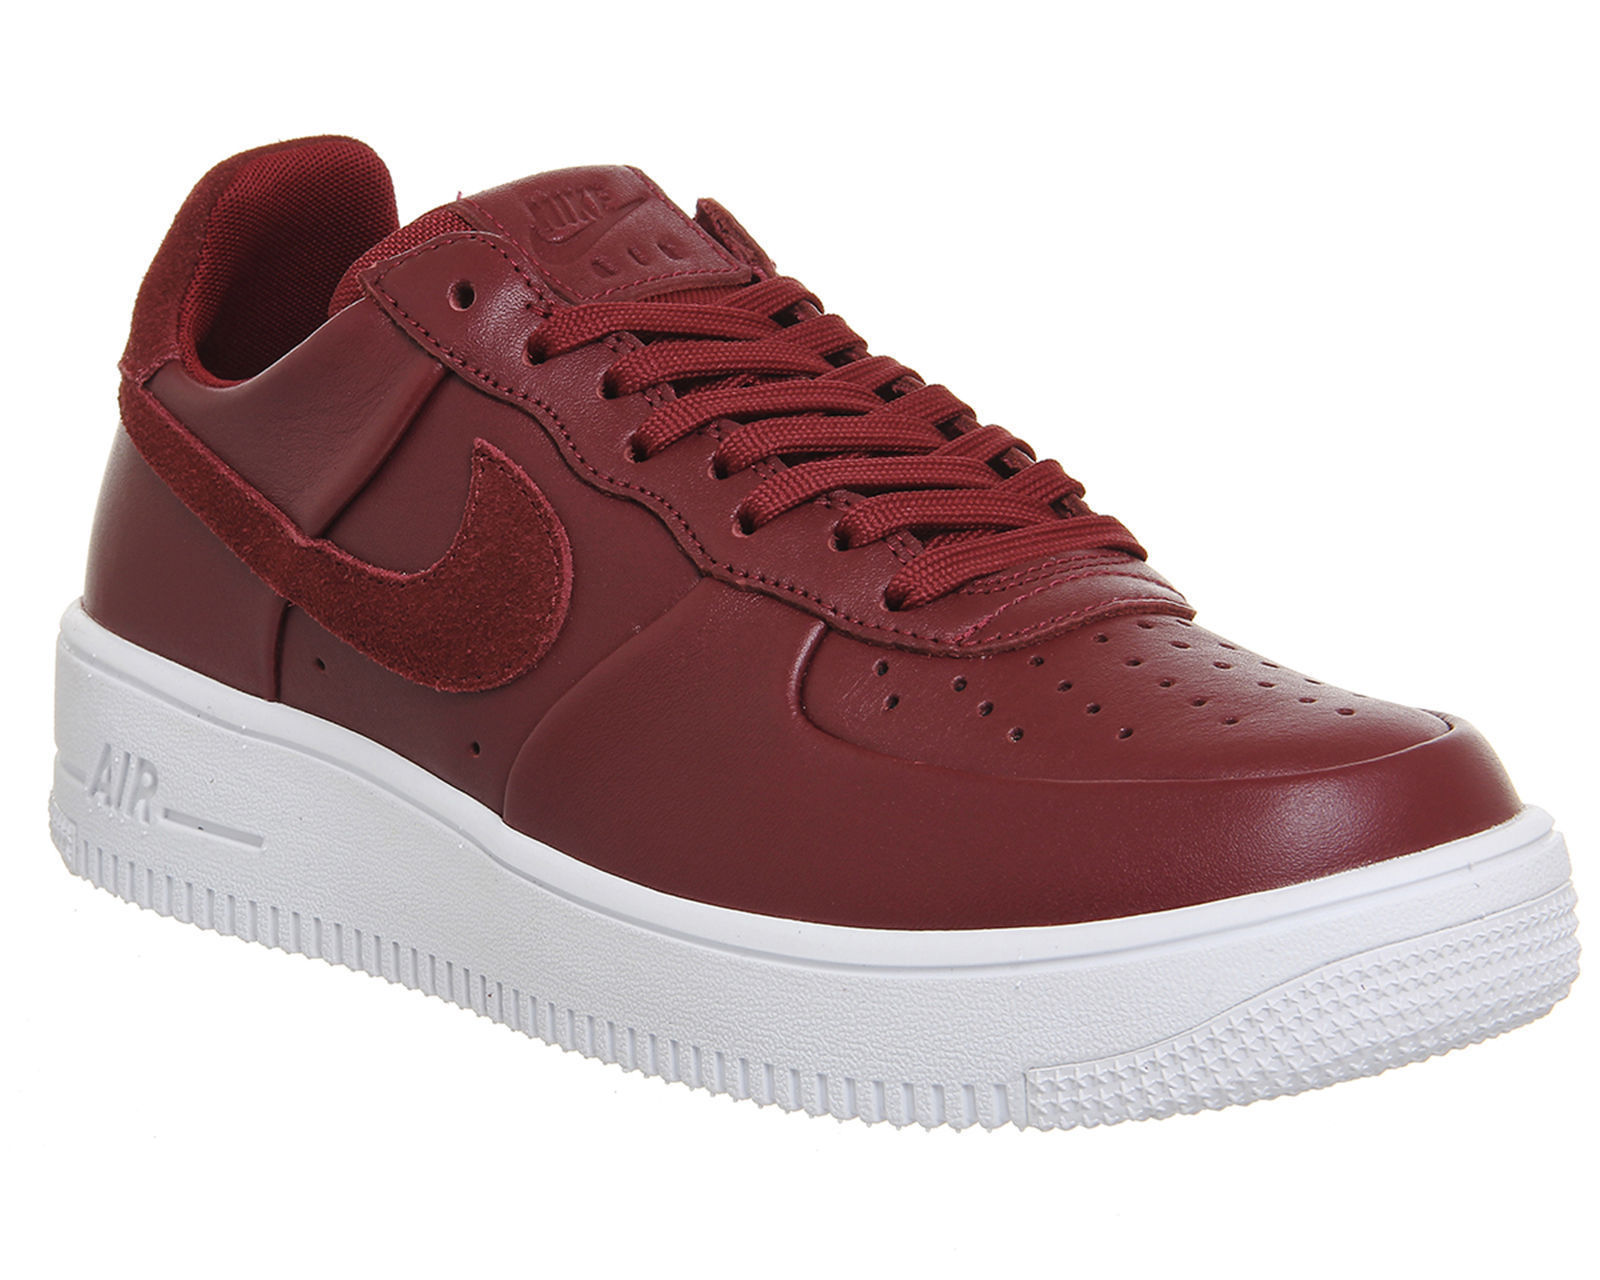 nike air force 1 ultraforce leather men 39 s trainers shoes. Black Bedroom Furniture Sets. Home Design Ideas